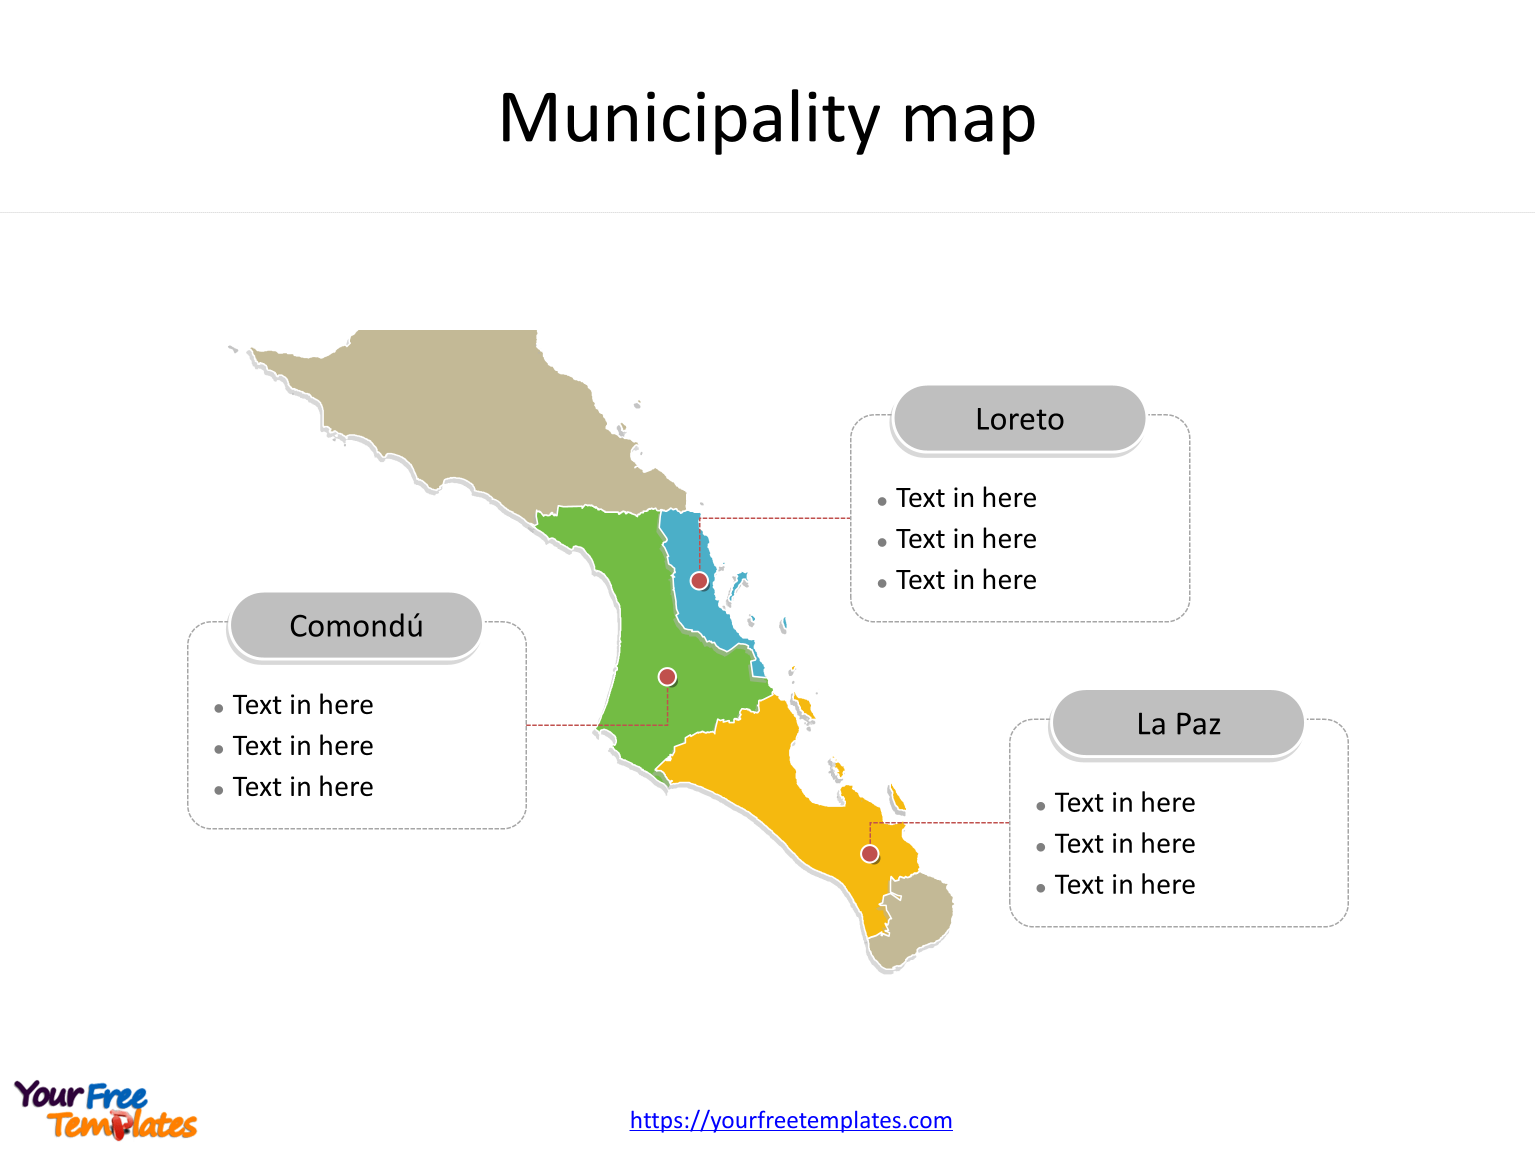 State of Mexico Baja California Sur map with most populated municipalities labeled on the Baja California Sur maps PowerPoint templates